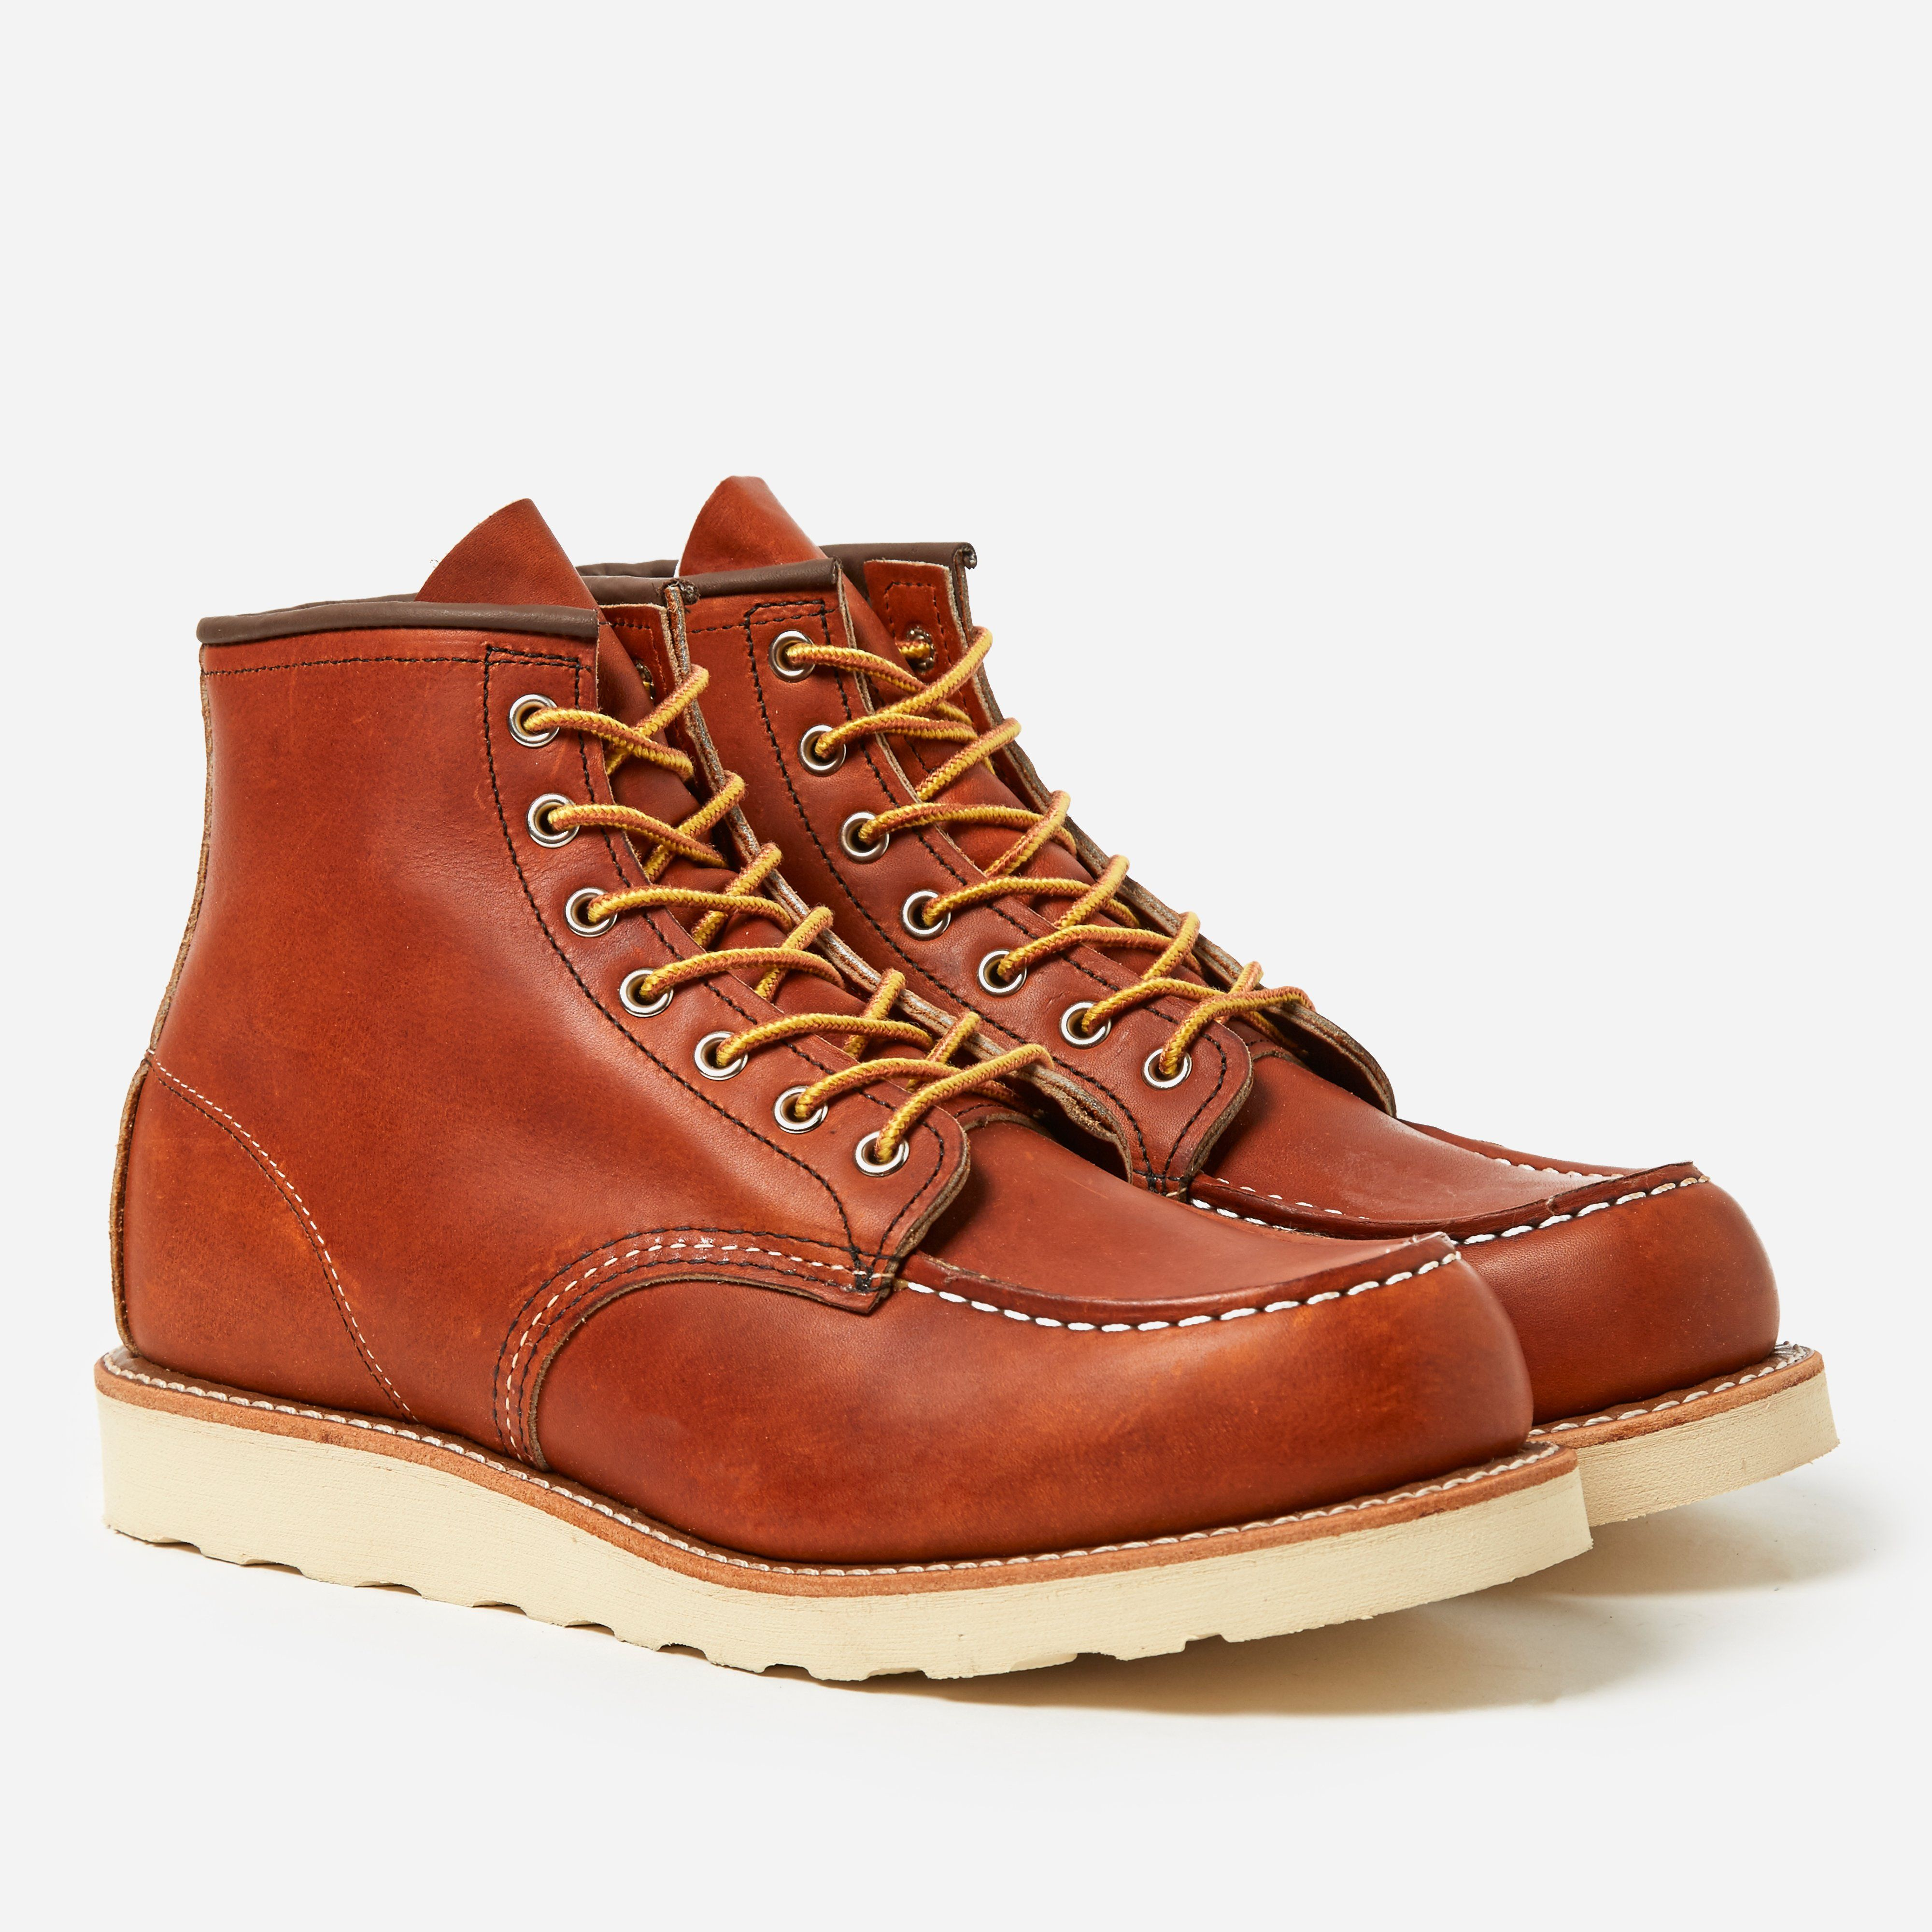 e305d7185 Red Wing 00875 6